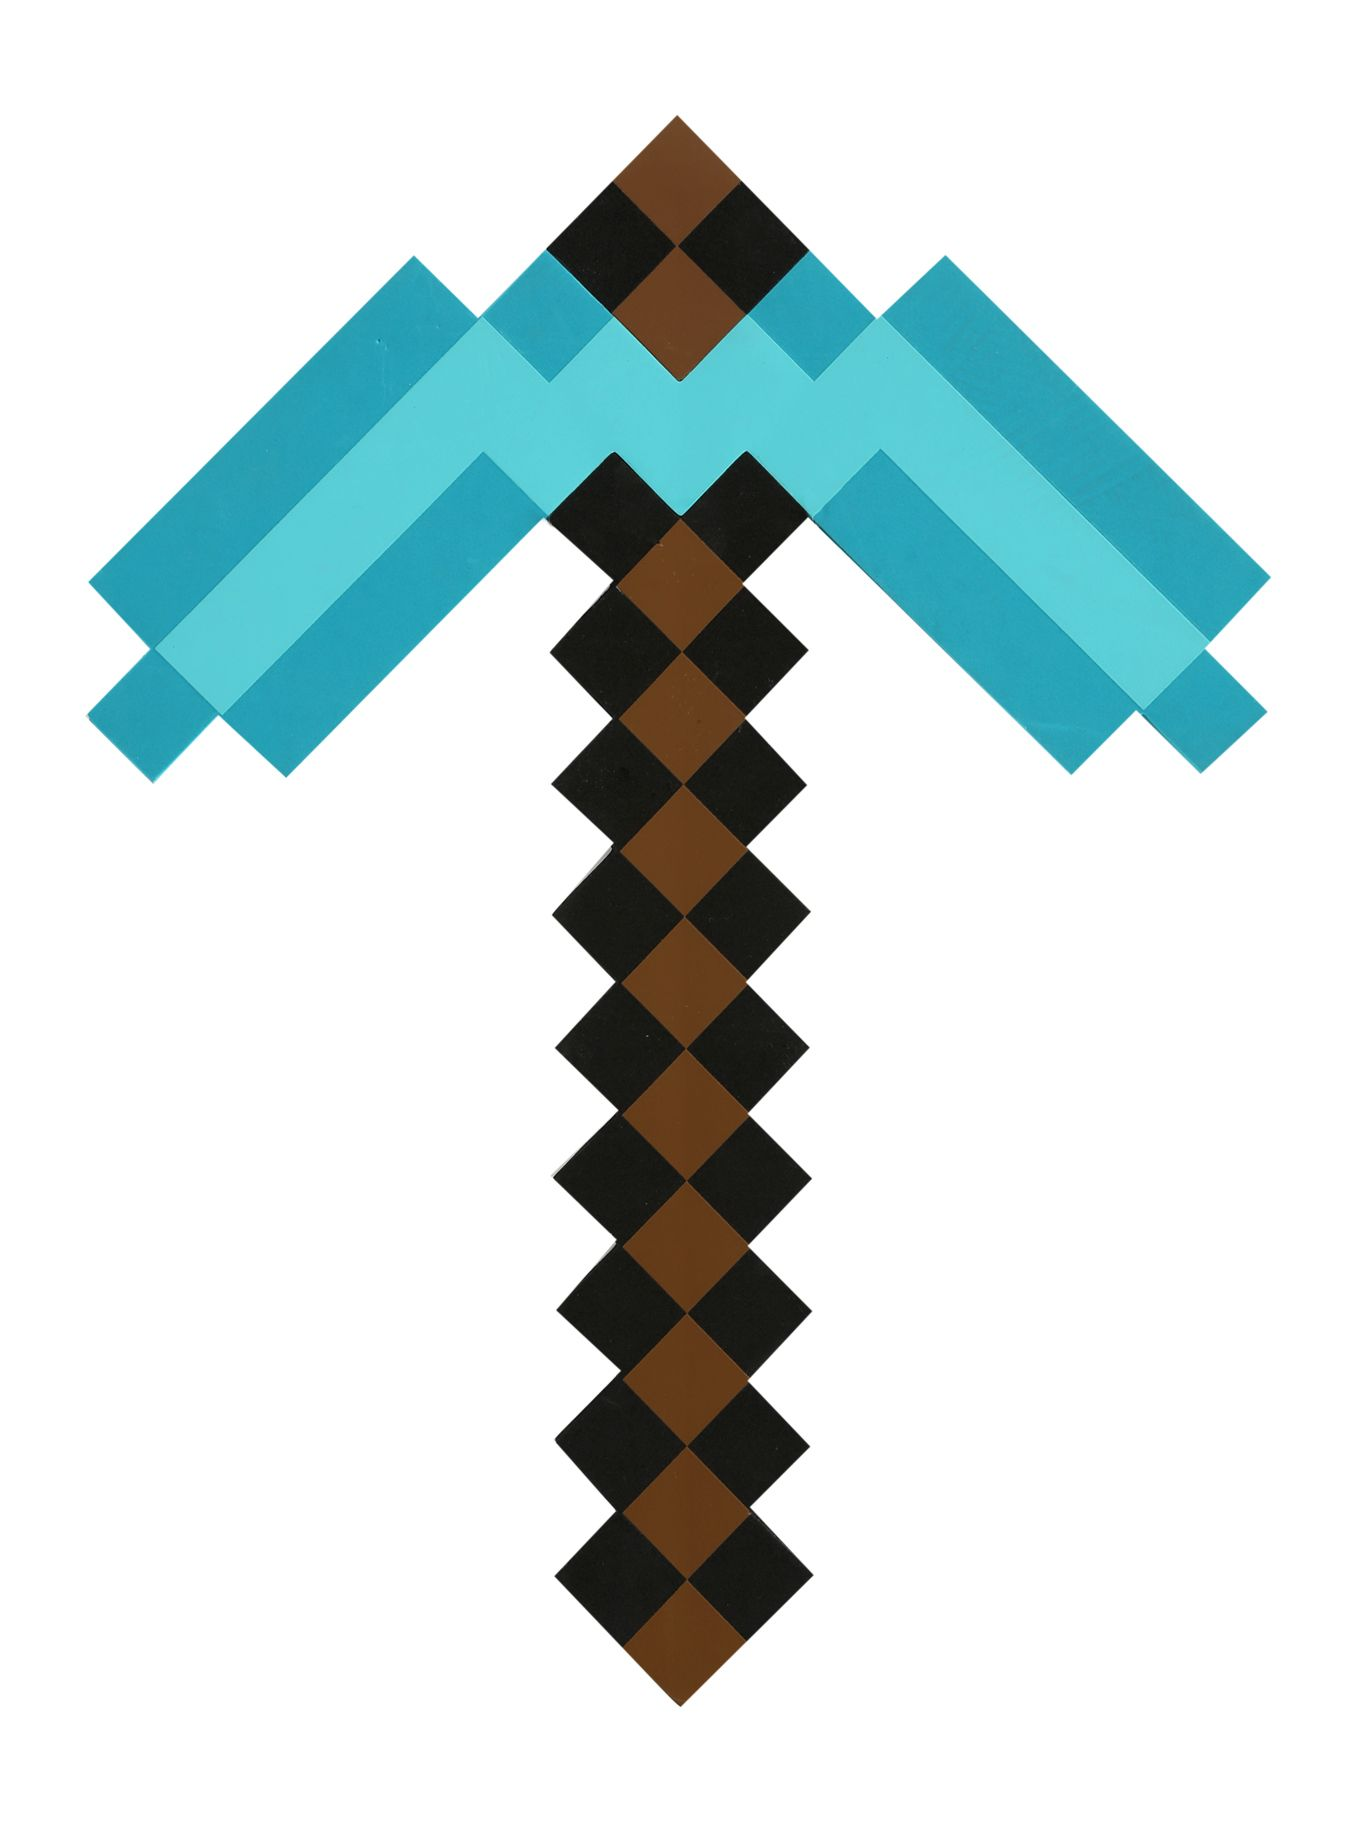 How to Make a Pickaxe on Minecraft